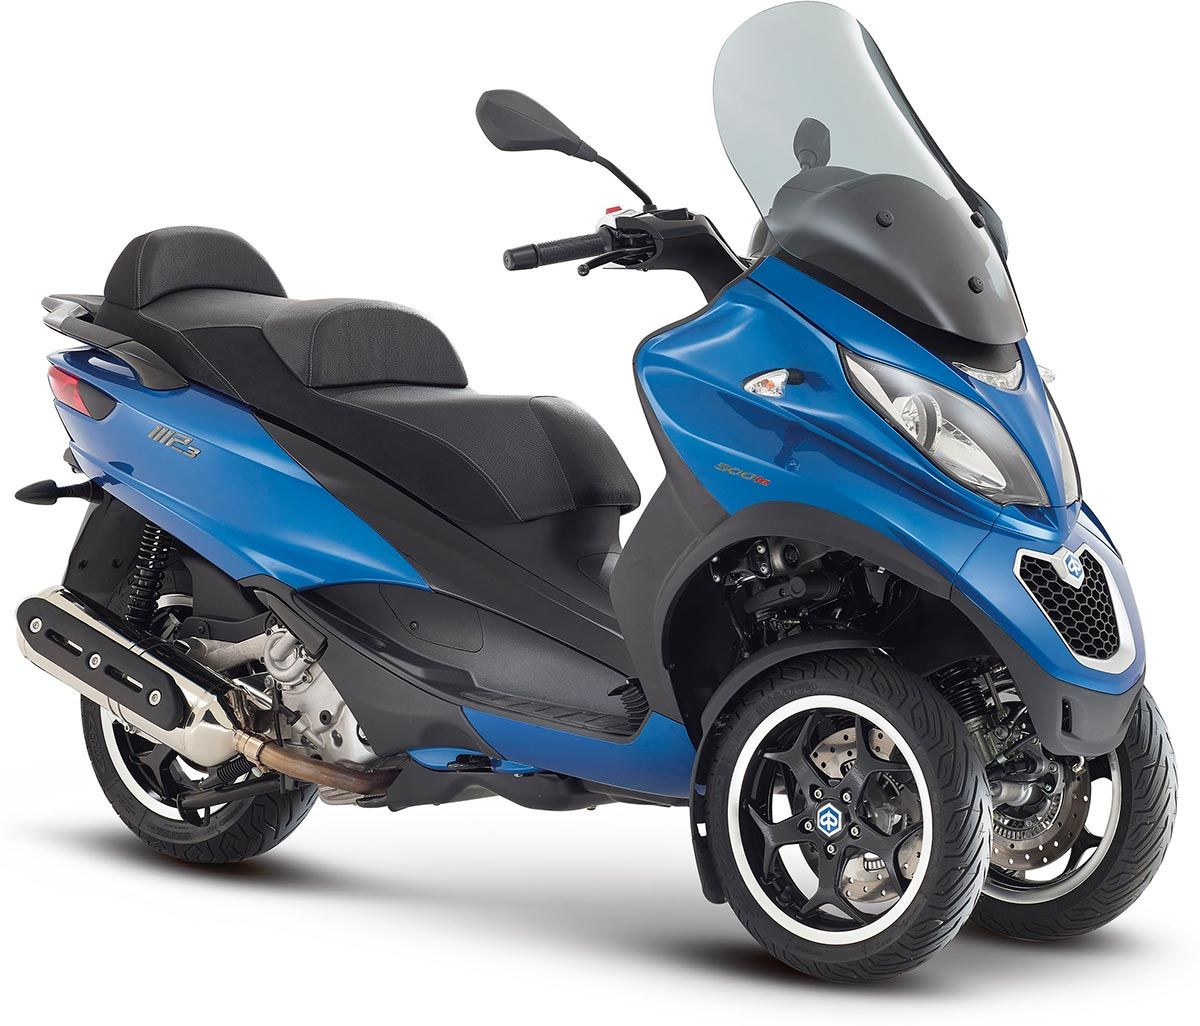 piaggio mp3 500 lt abs et asr pour 2014 scooters vespa and wheels. Black Bedroom Furniture Sets. Home Design Ideas